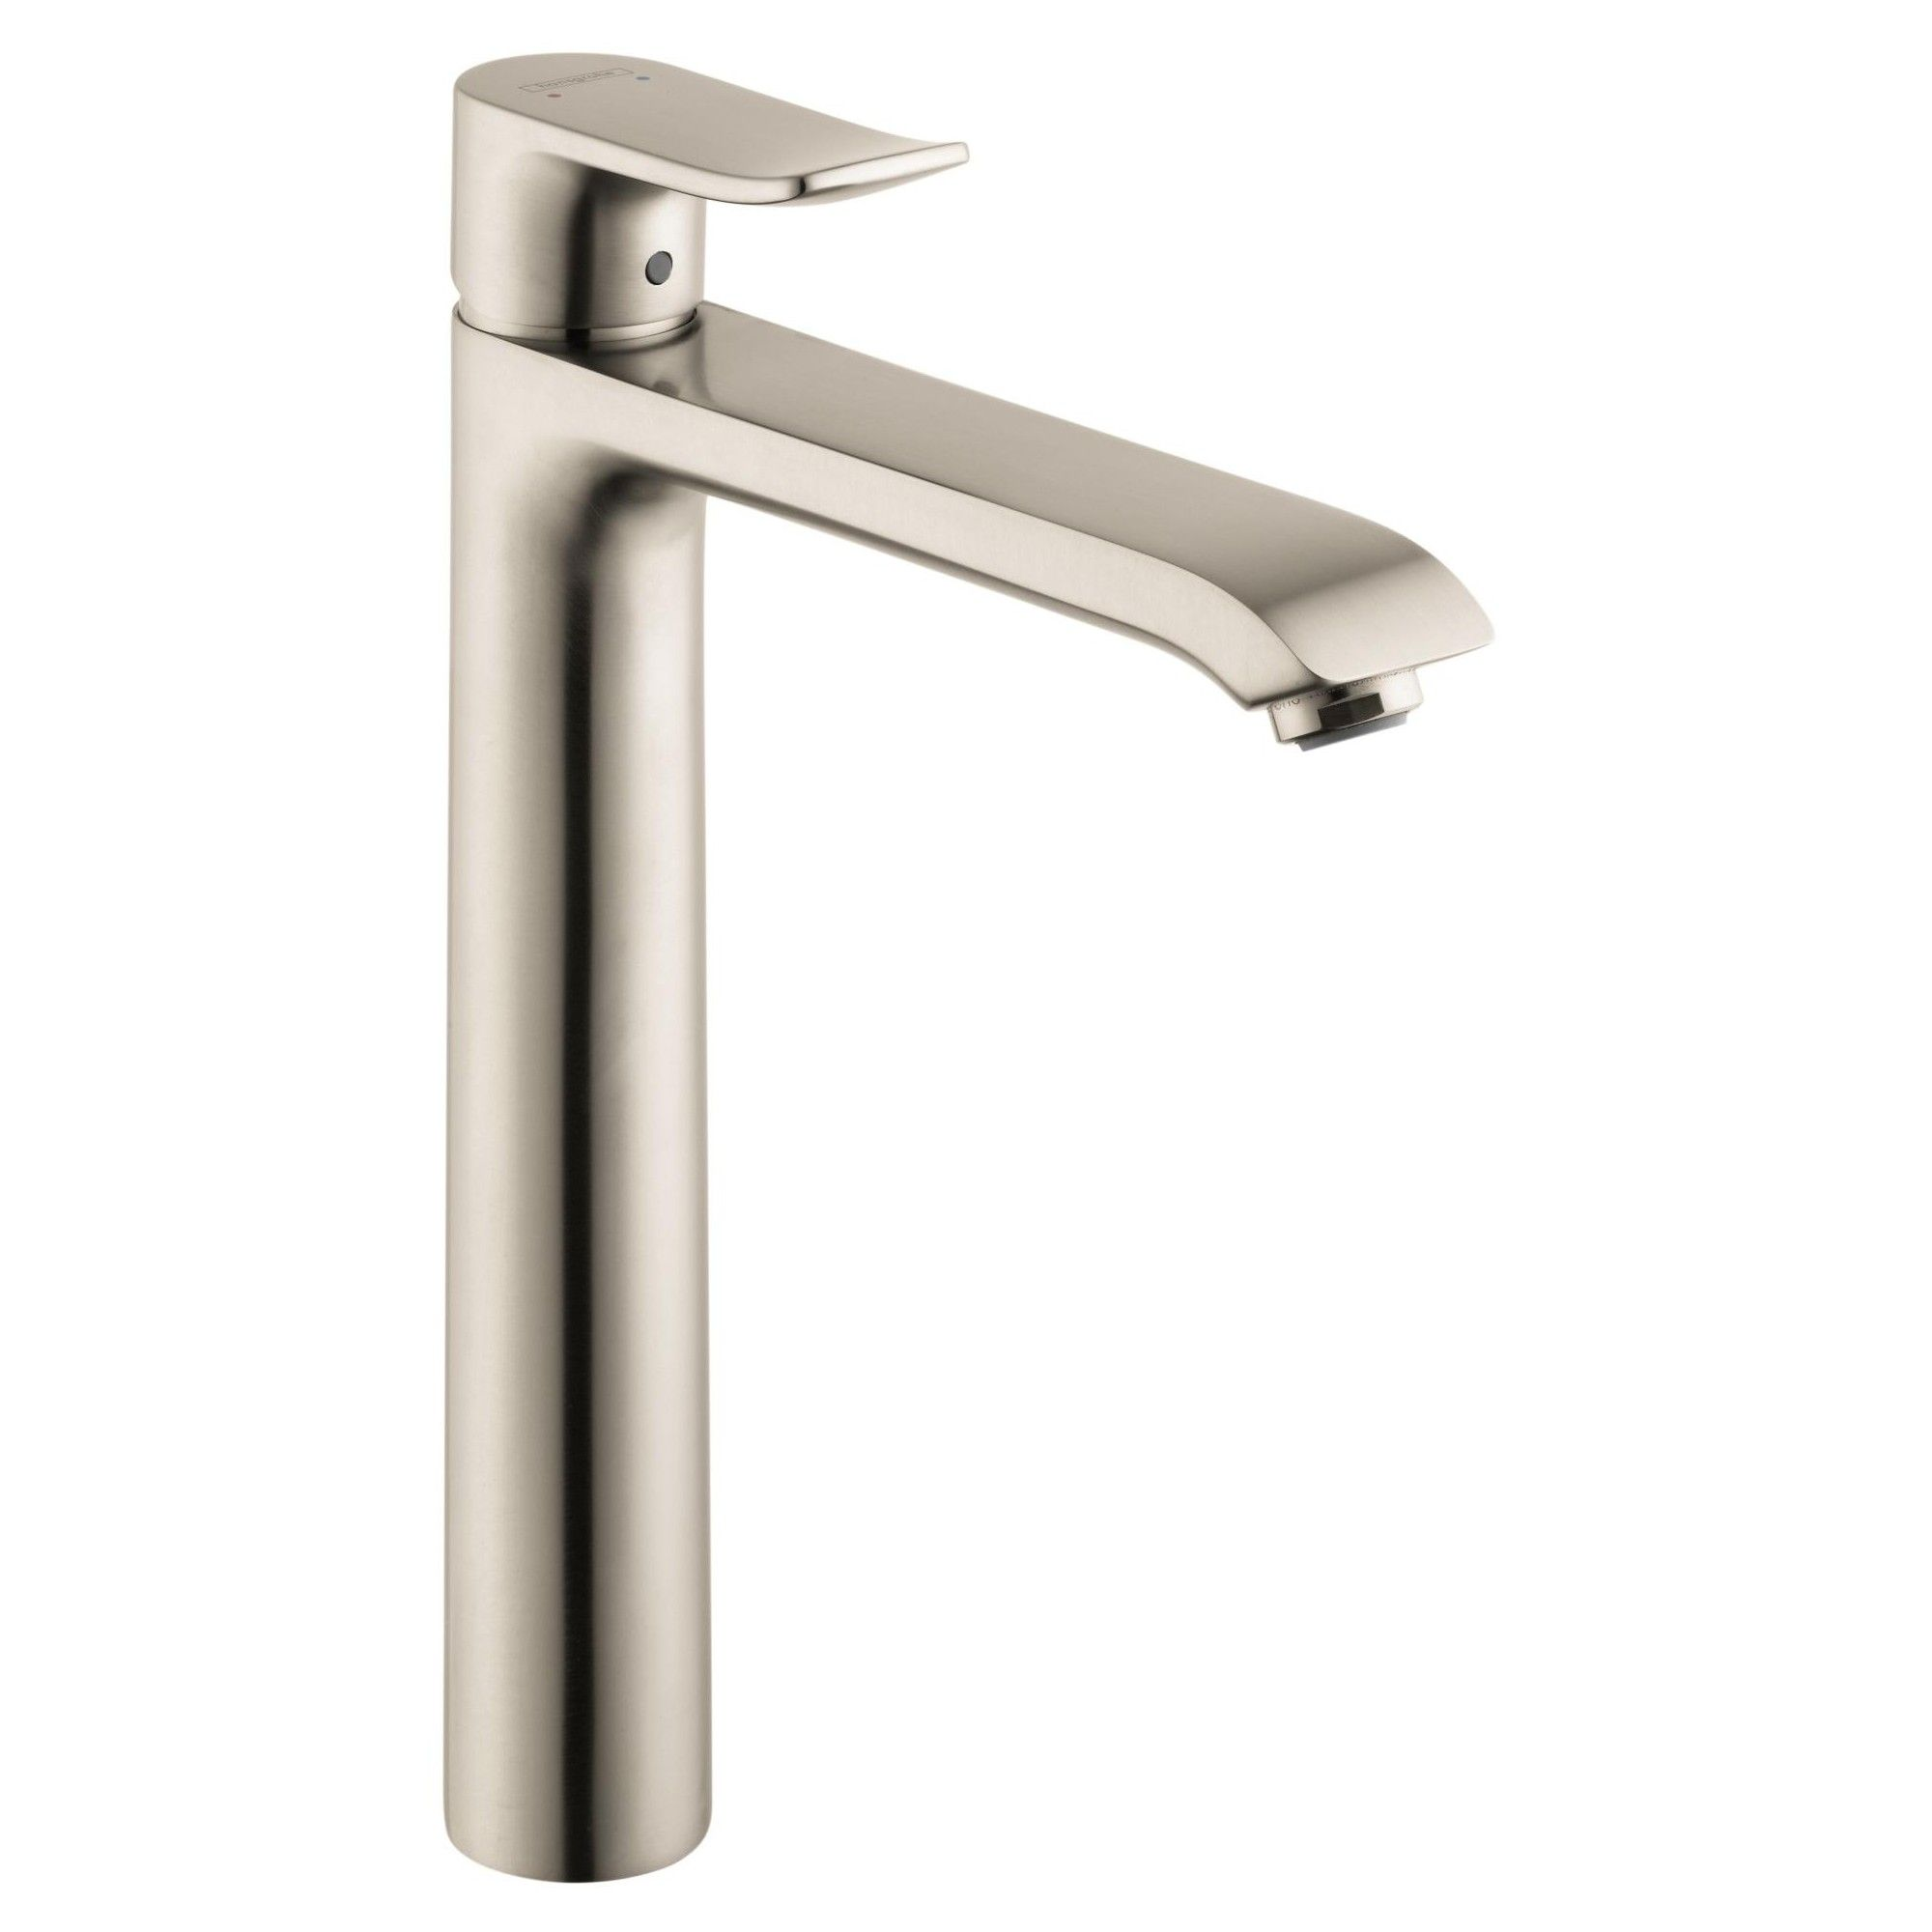 Hansgrohe 31183 Metris 1 2 Gpm Single Hole Bathroom Faucet With Ecoright Brushed Nickel High Arc Bathroom Faucet Bathroom Faucets